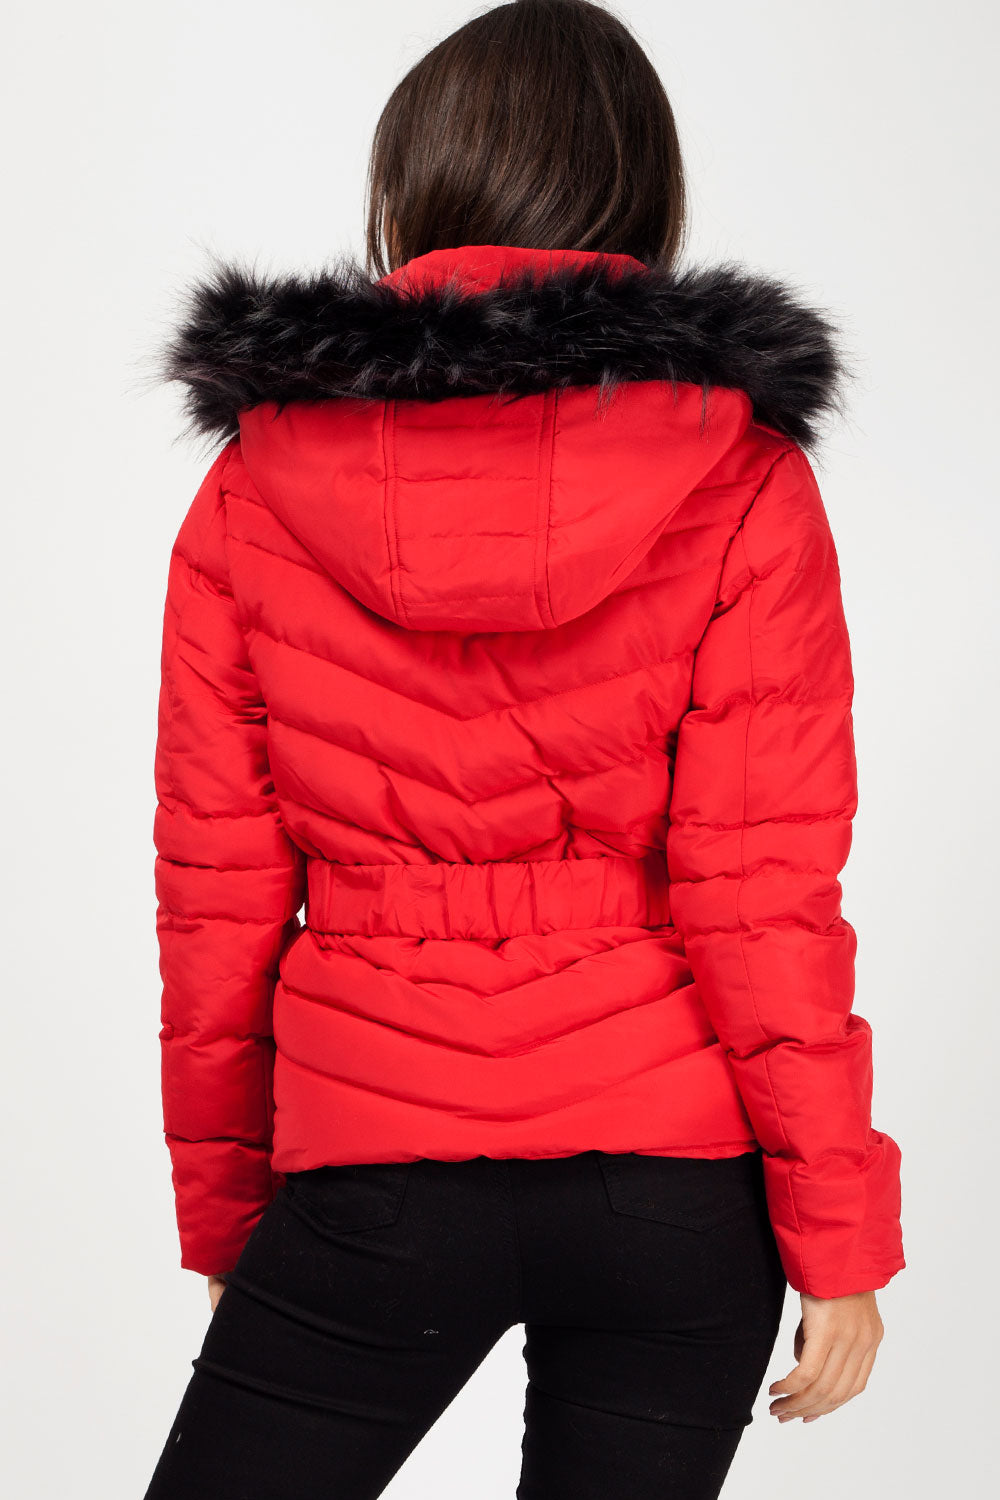 red puffer coat womens